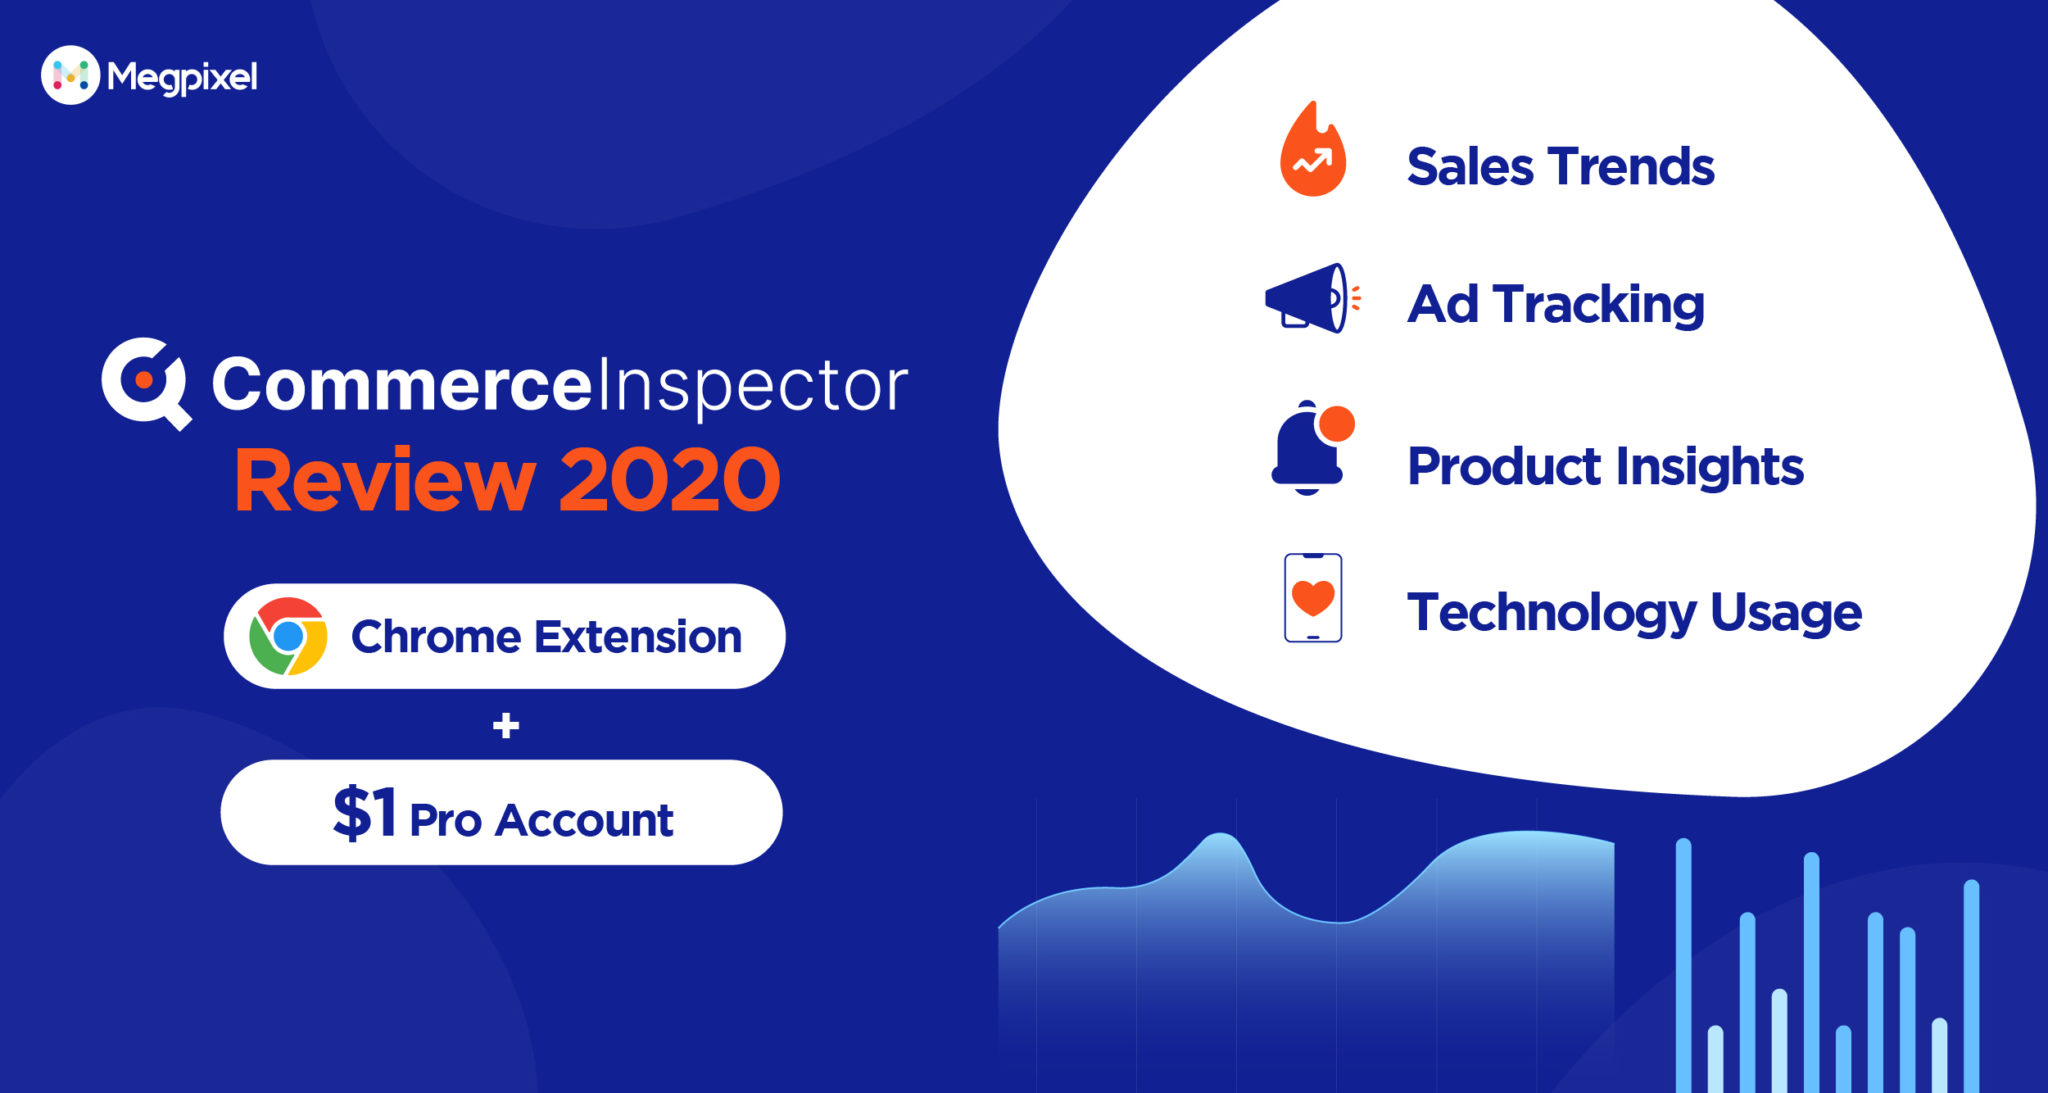 Commerce Inspector Review 2019 - Chrome Extension + $1 Pro Account